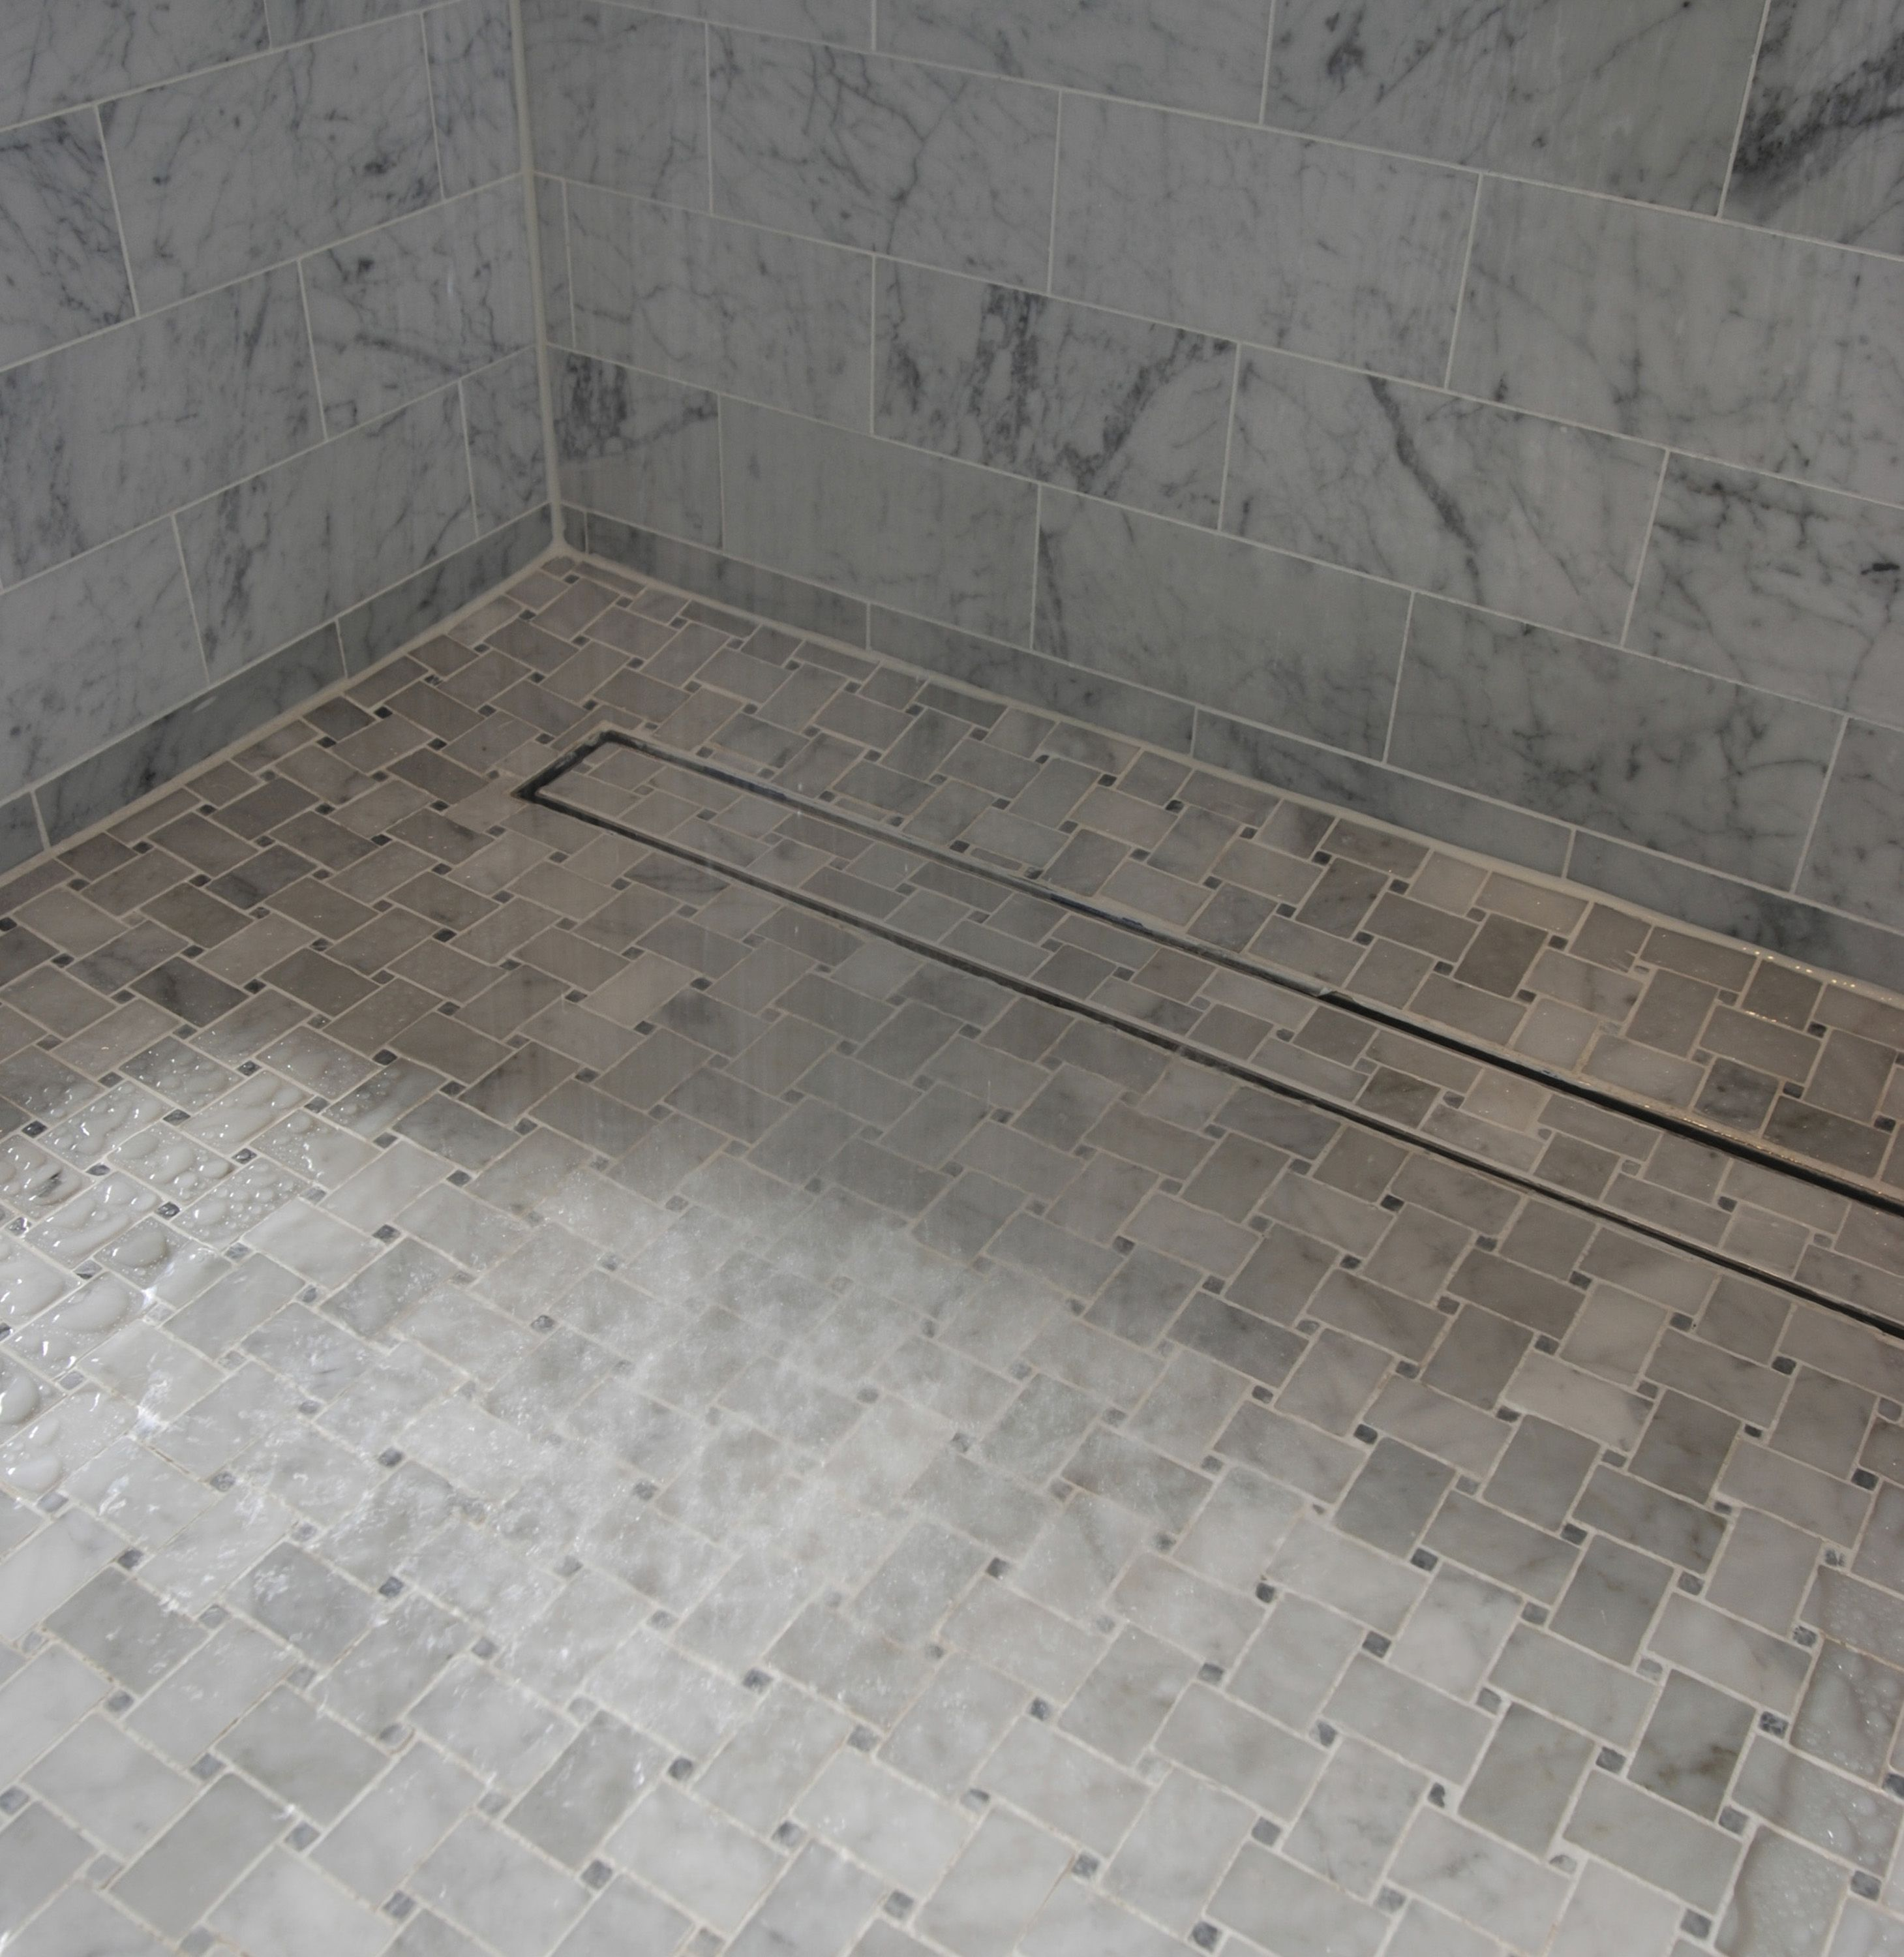 Can You Find The Luxe Linear Shower Drain Tile Insert In This